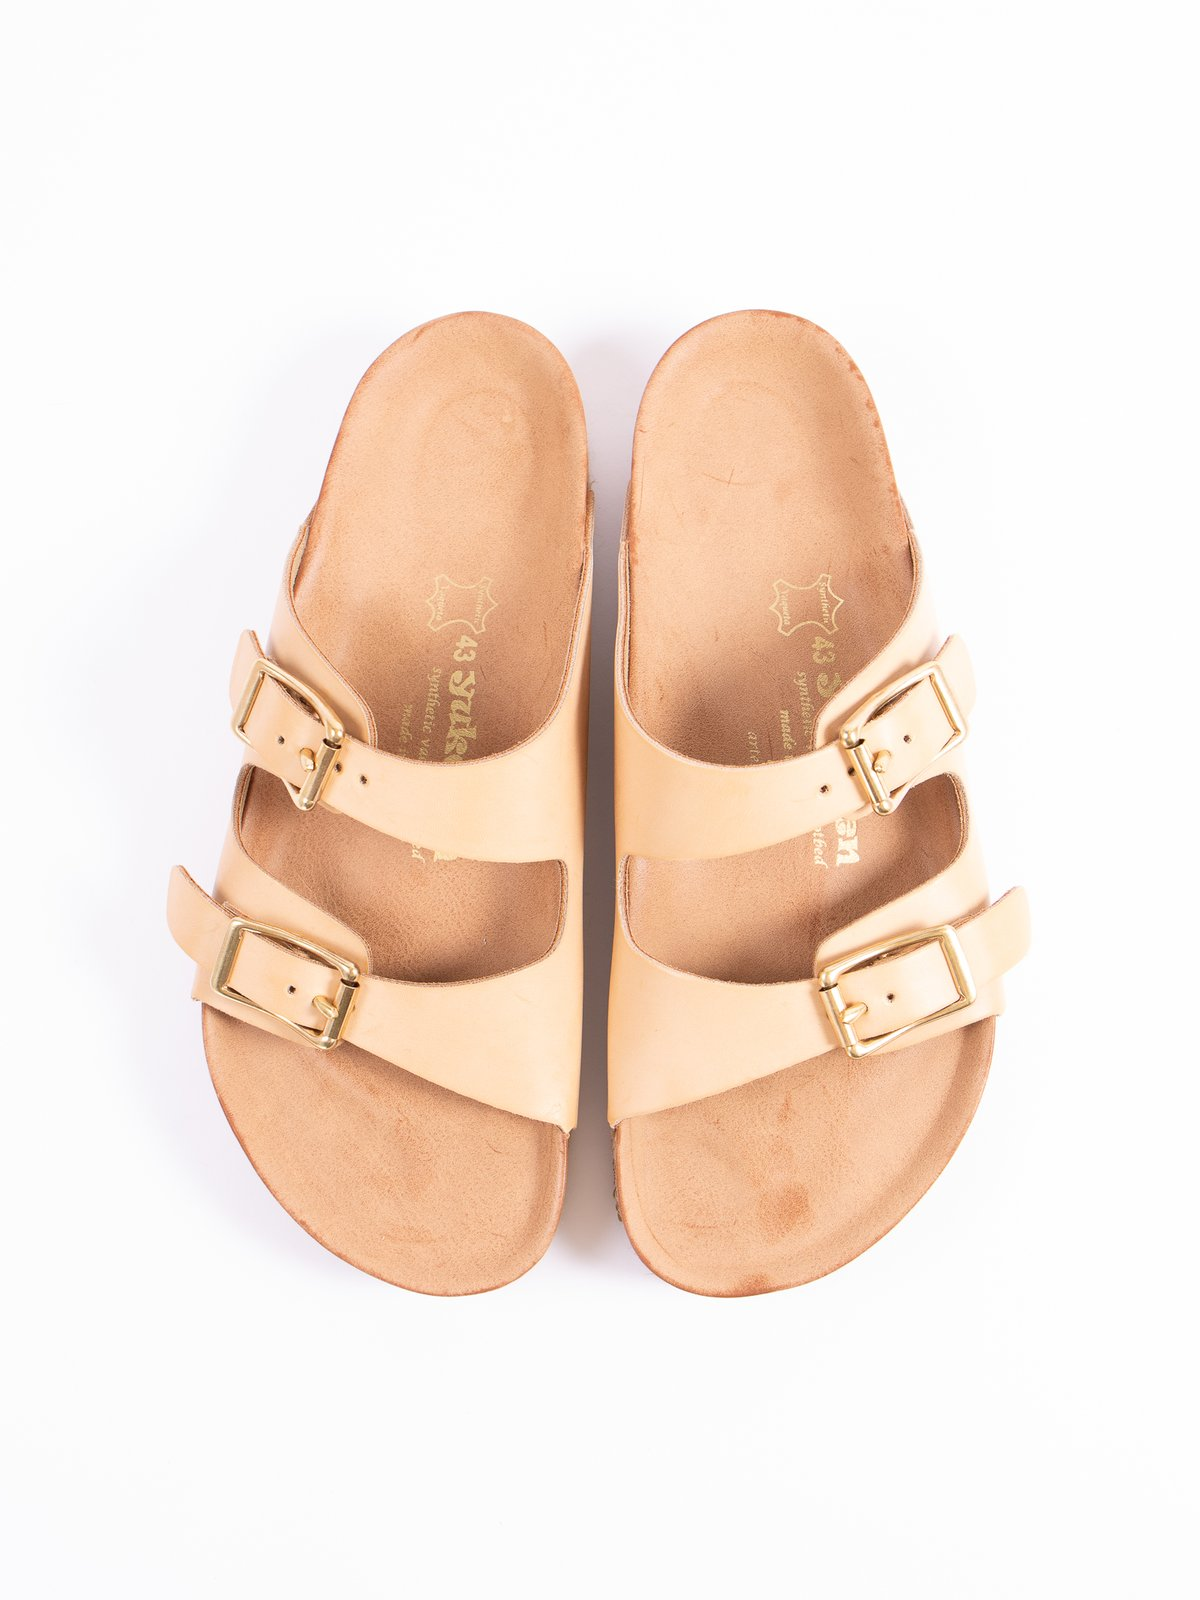 Natural Arizonian Sandal - Image 5